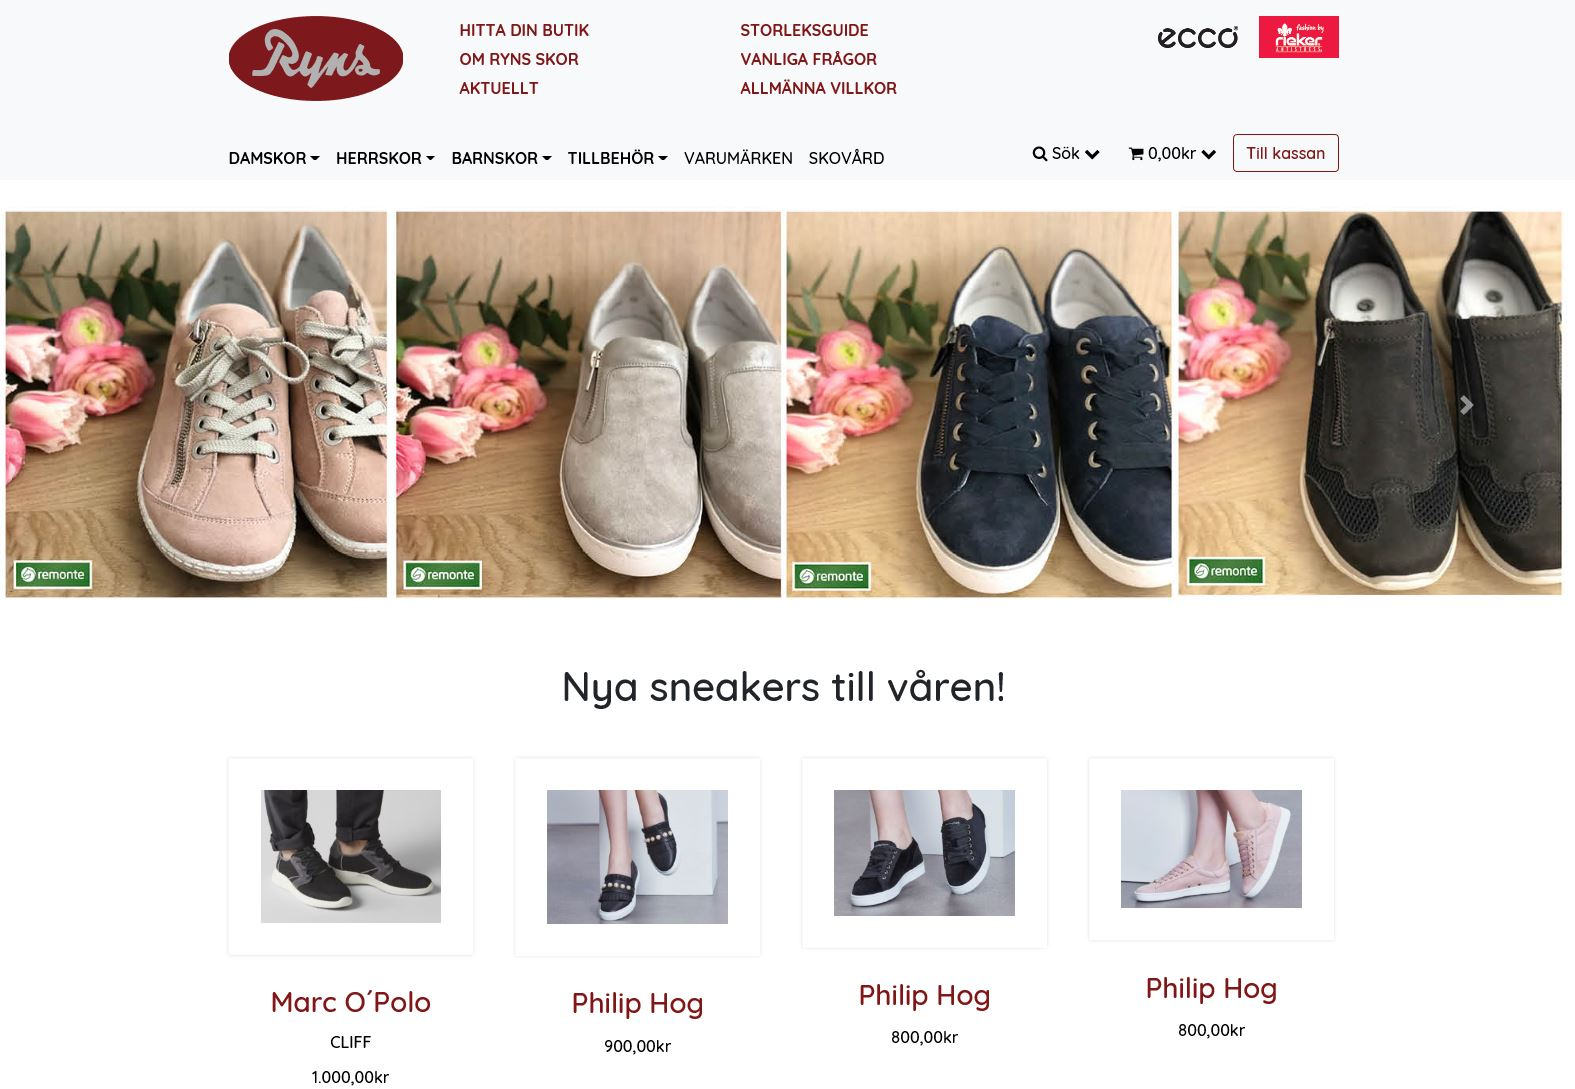 Ryns Skor öppnar PRS Webshop Polygon Communications AB